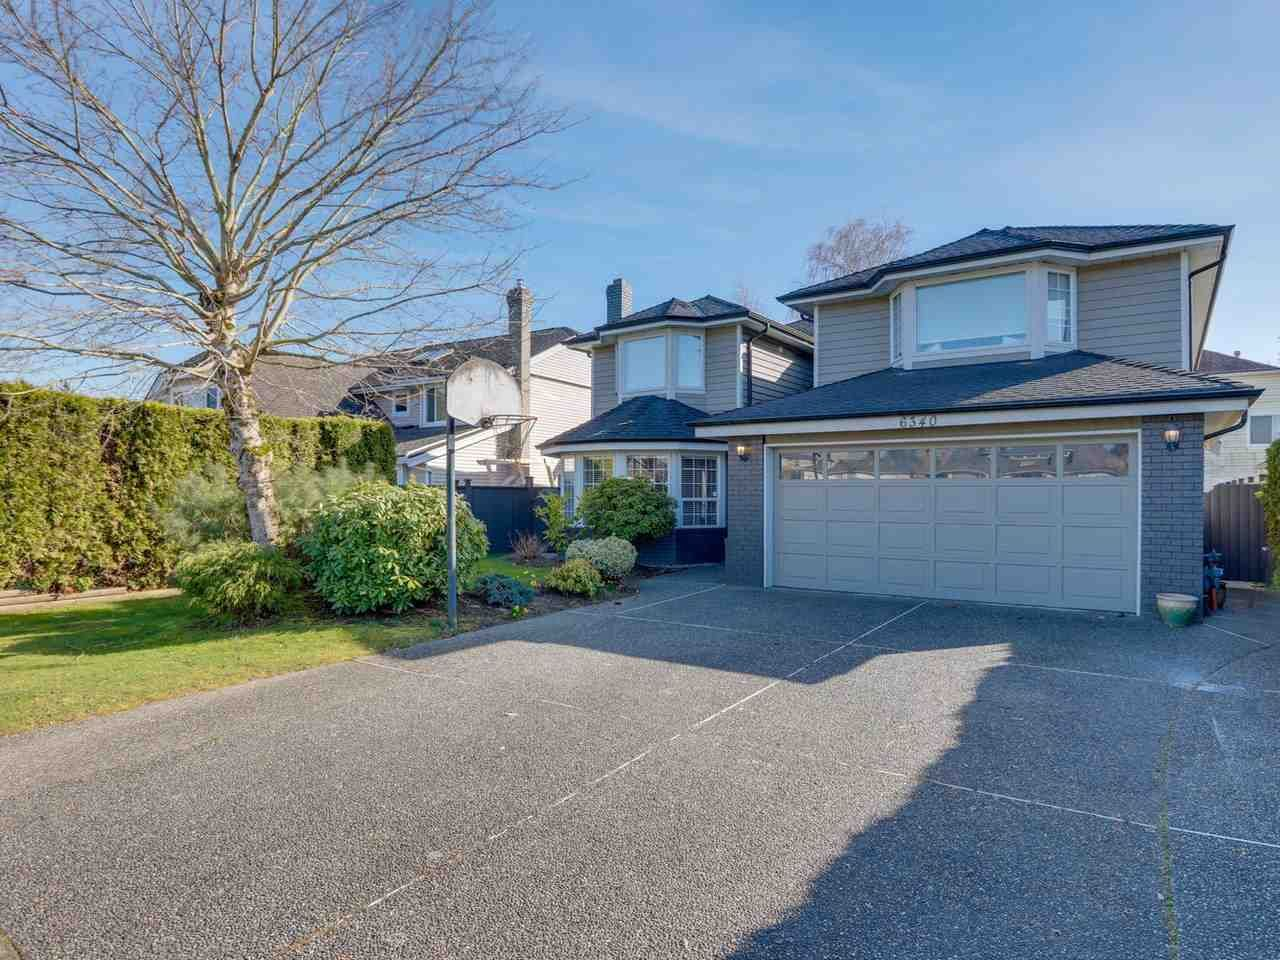 """Main Photo: 6340 HOLLY PARK Drive in Delta: Holly House for sale in """"SUNRISE"""" (Ladner)  : MLS®# R2558311"""